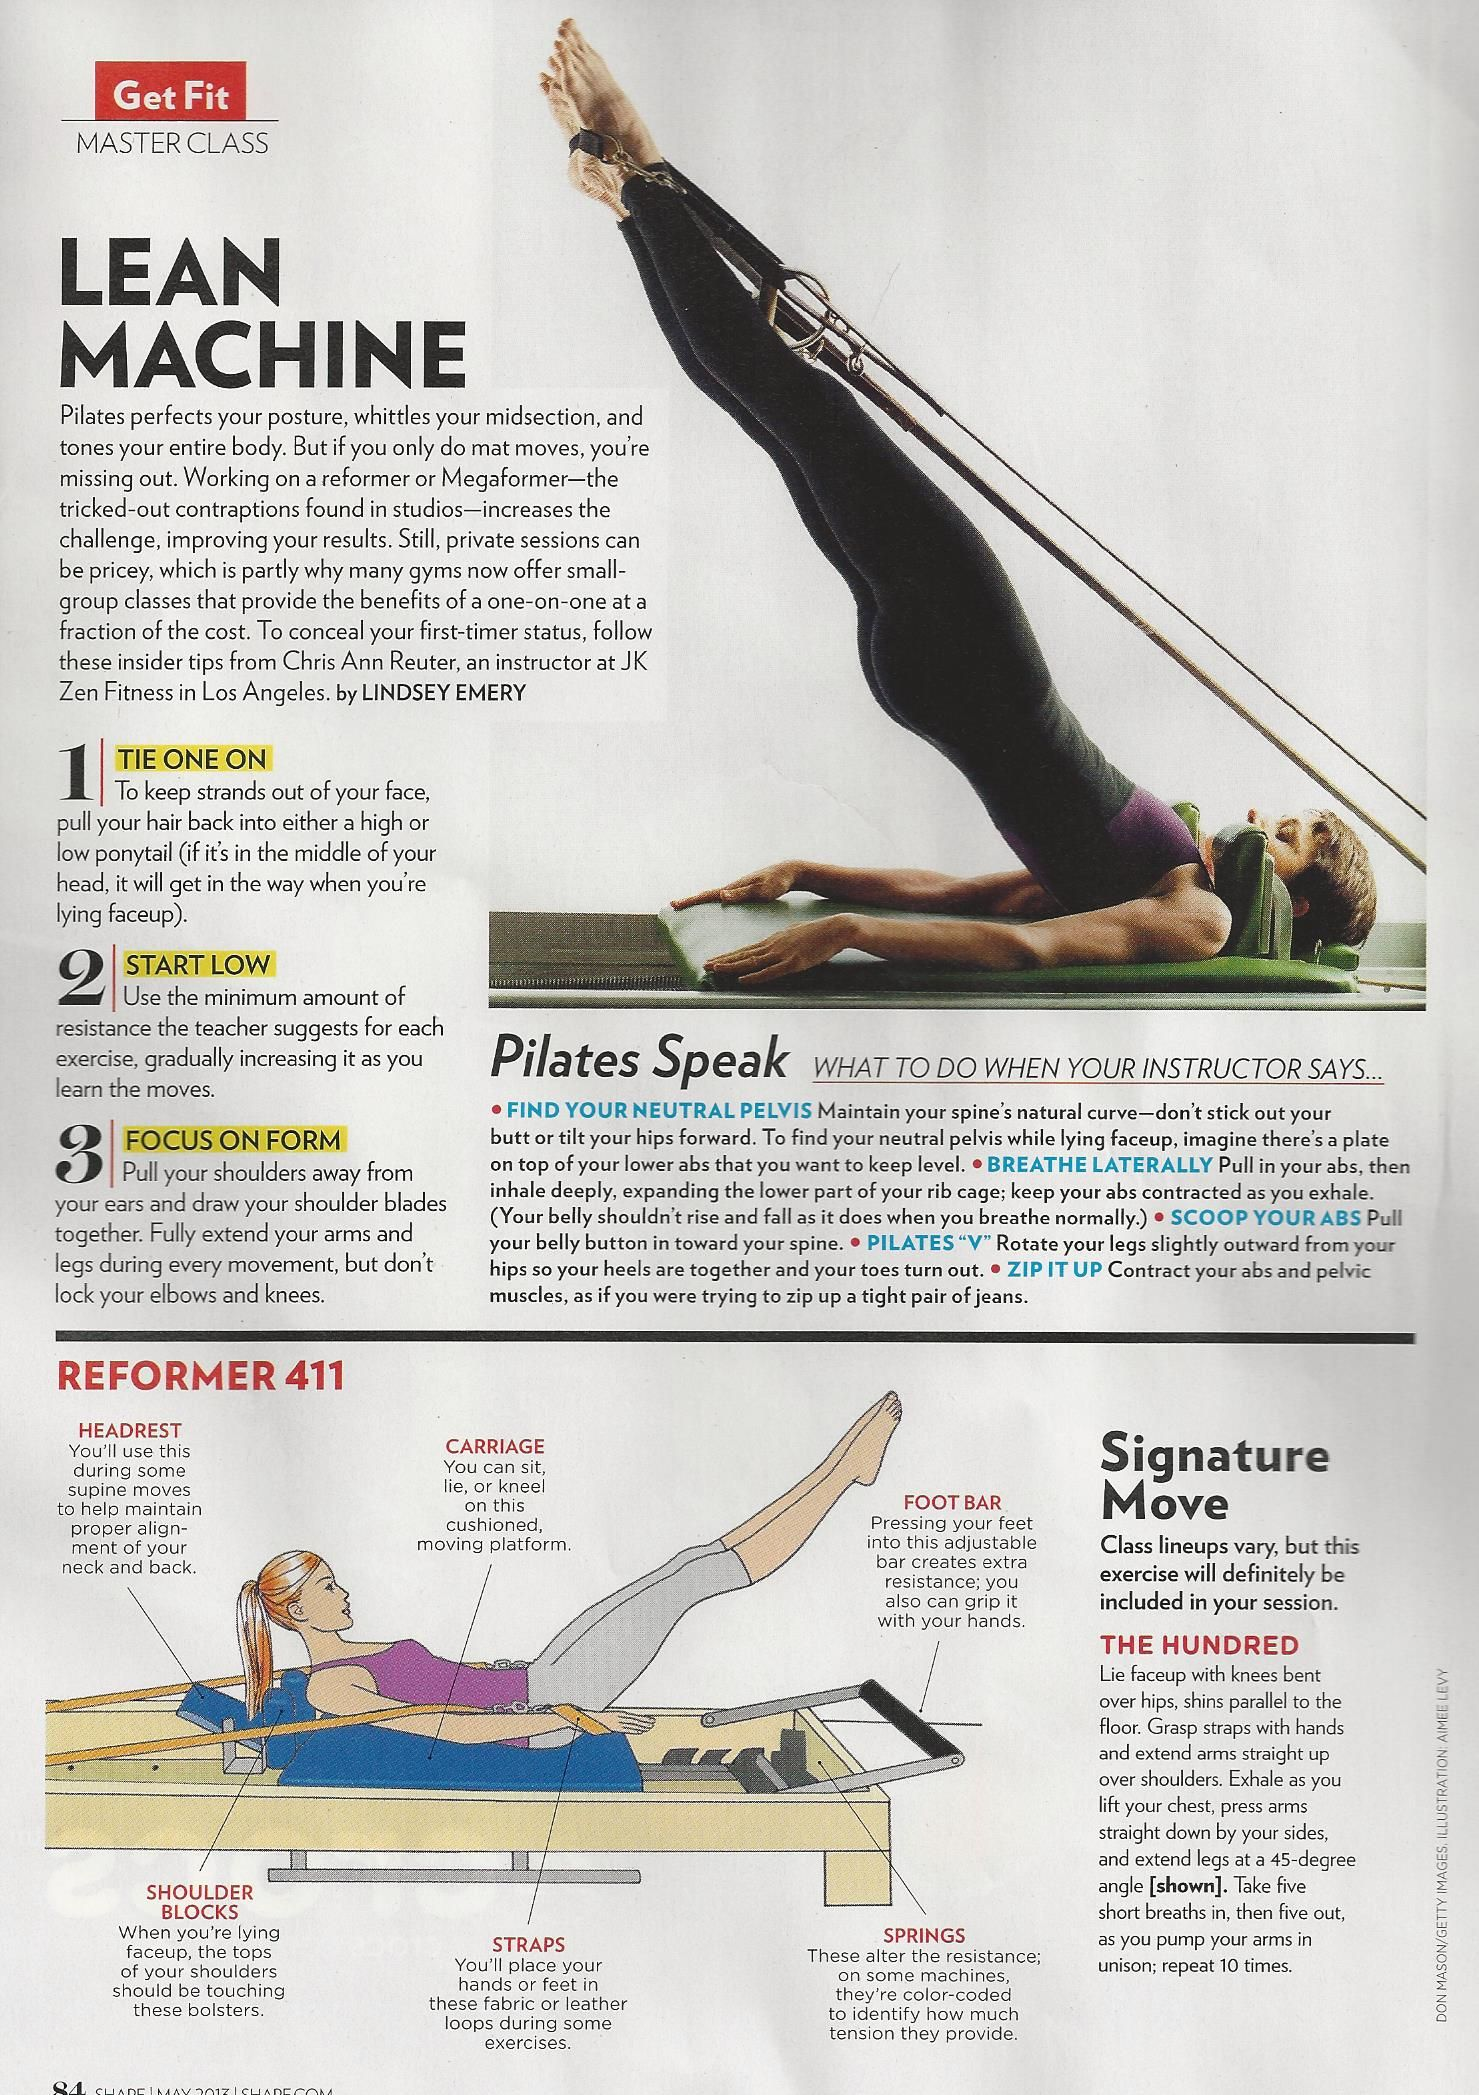 The 411 on Pilates reformers from Shape magazine featuring tips from Chris Ann Reuter of JK Zen Fitness in Los Angeles. www.Shape.com